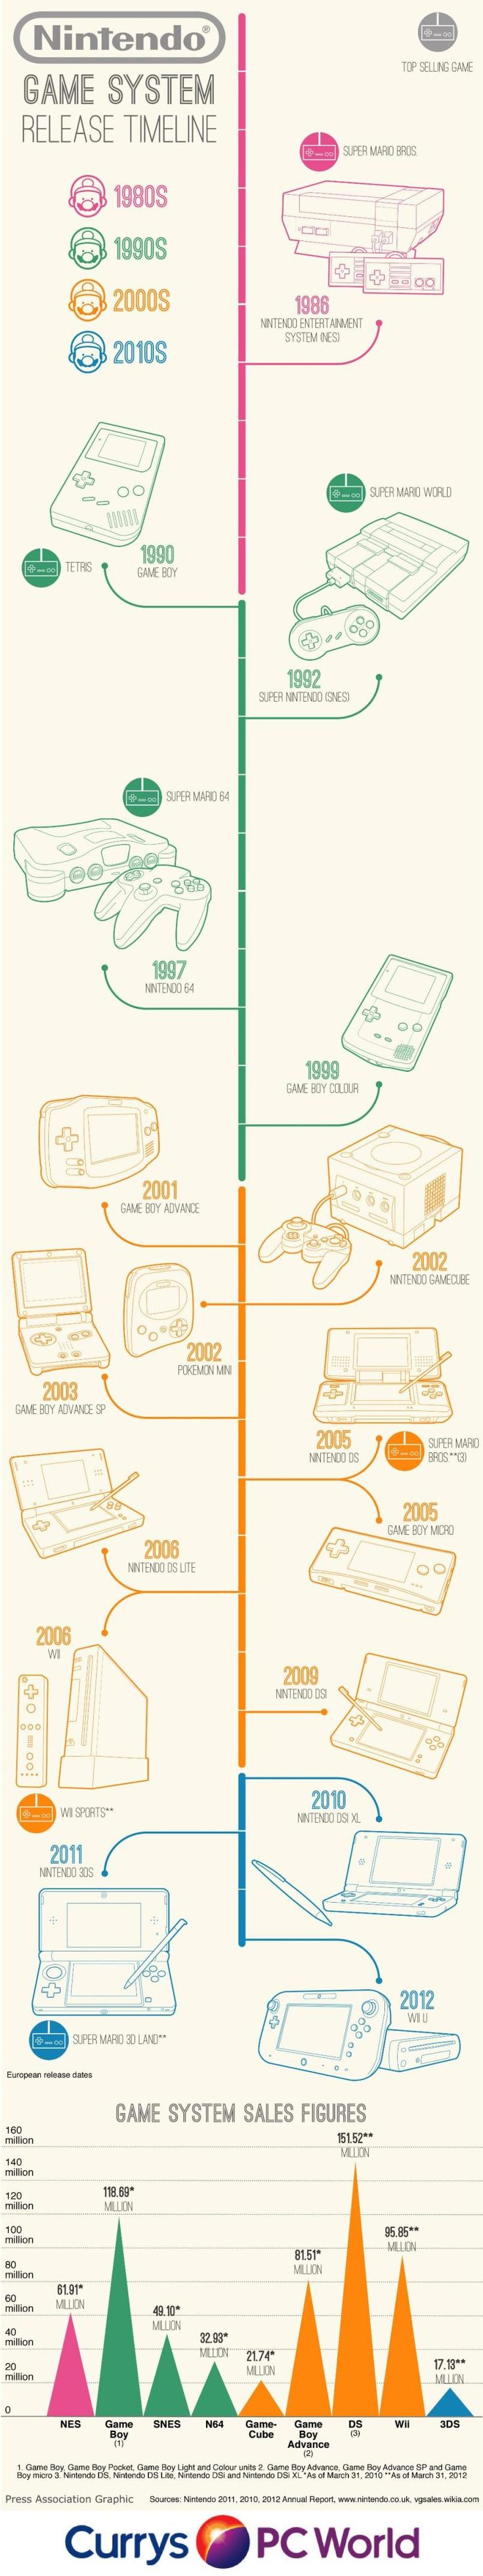 Infographic charts Nintendo UK game system release dates, top selling games and system sales figures